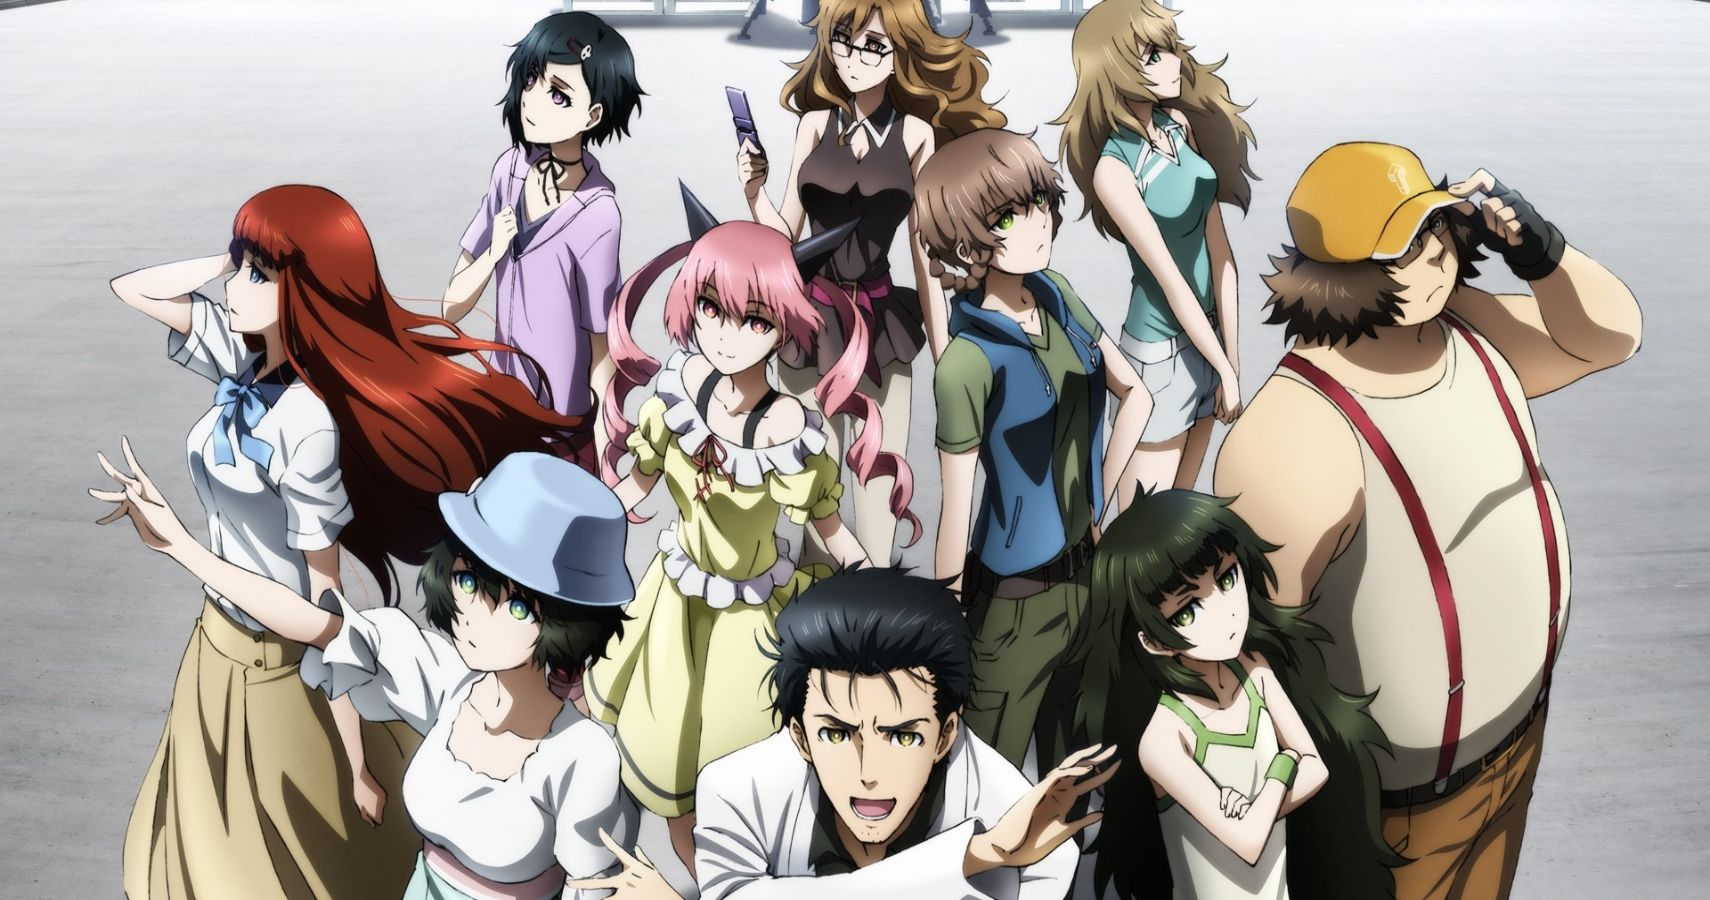 10 Anime to Watch If You Love Steins;Gate | CBR